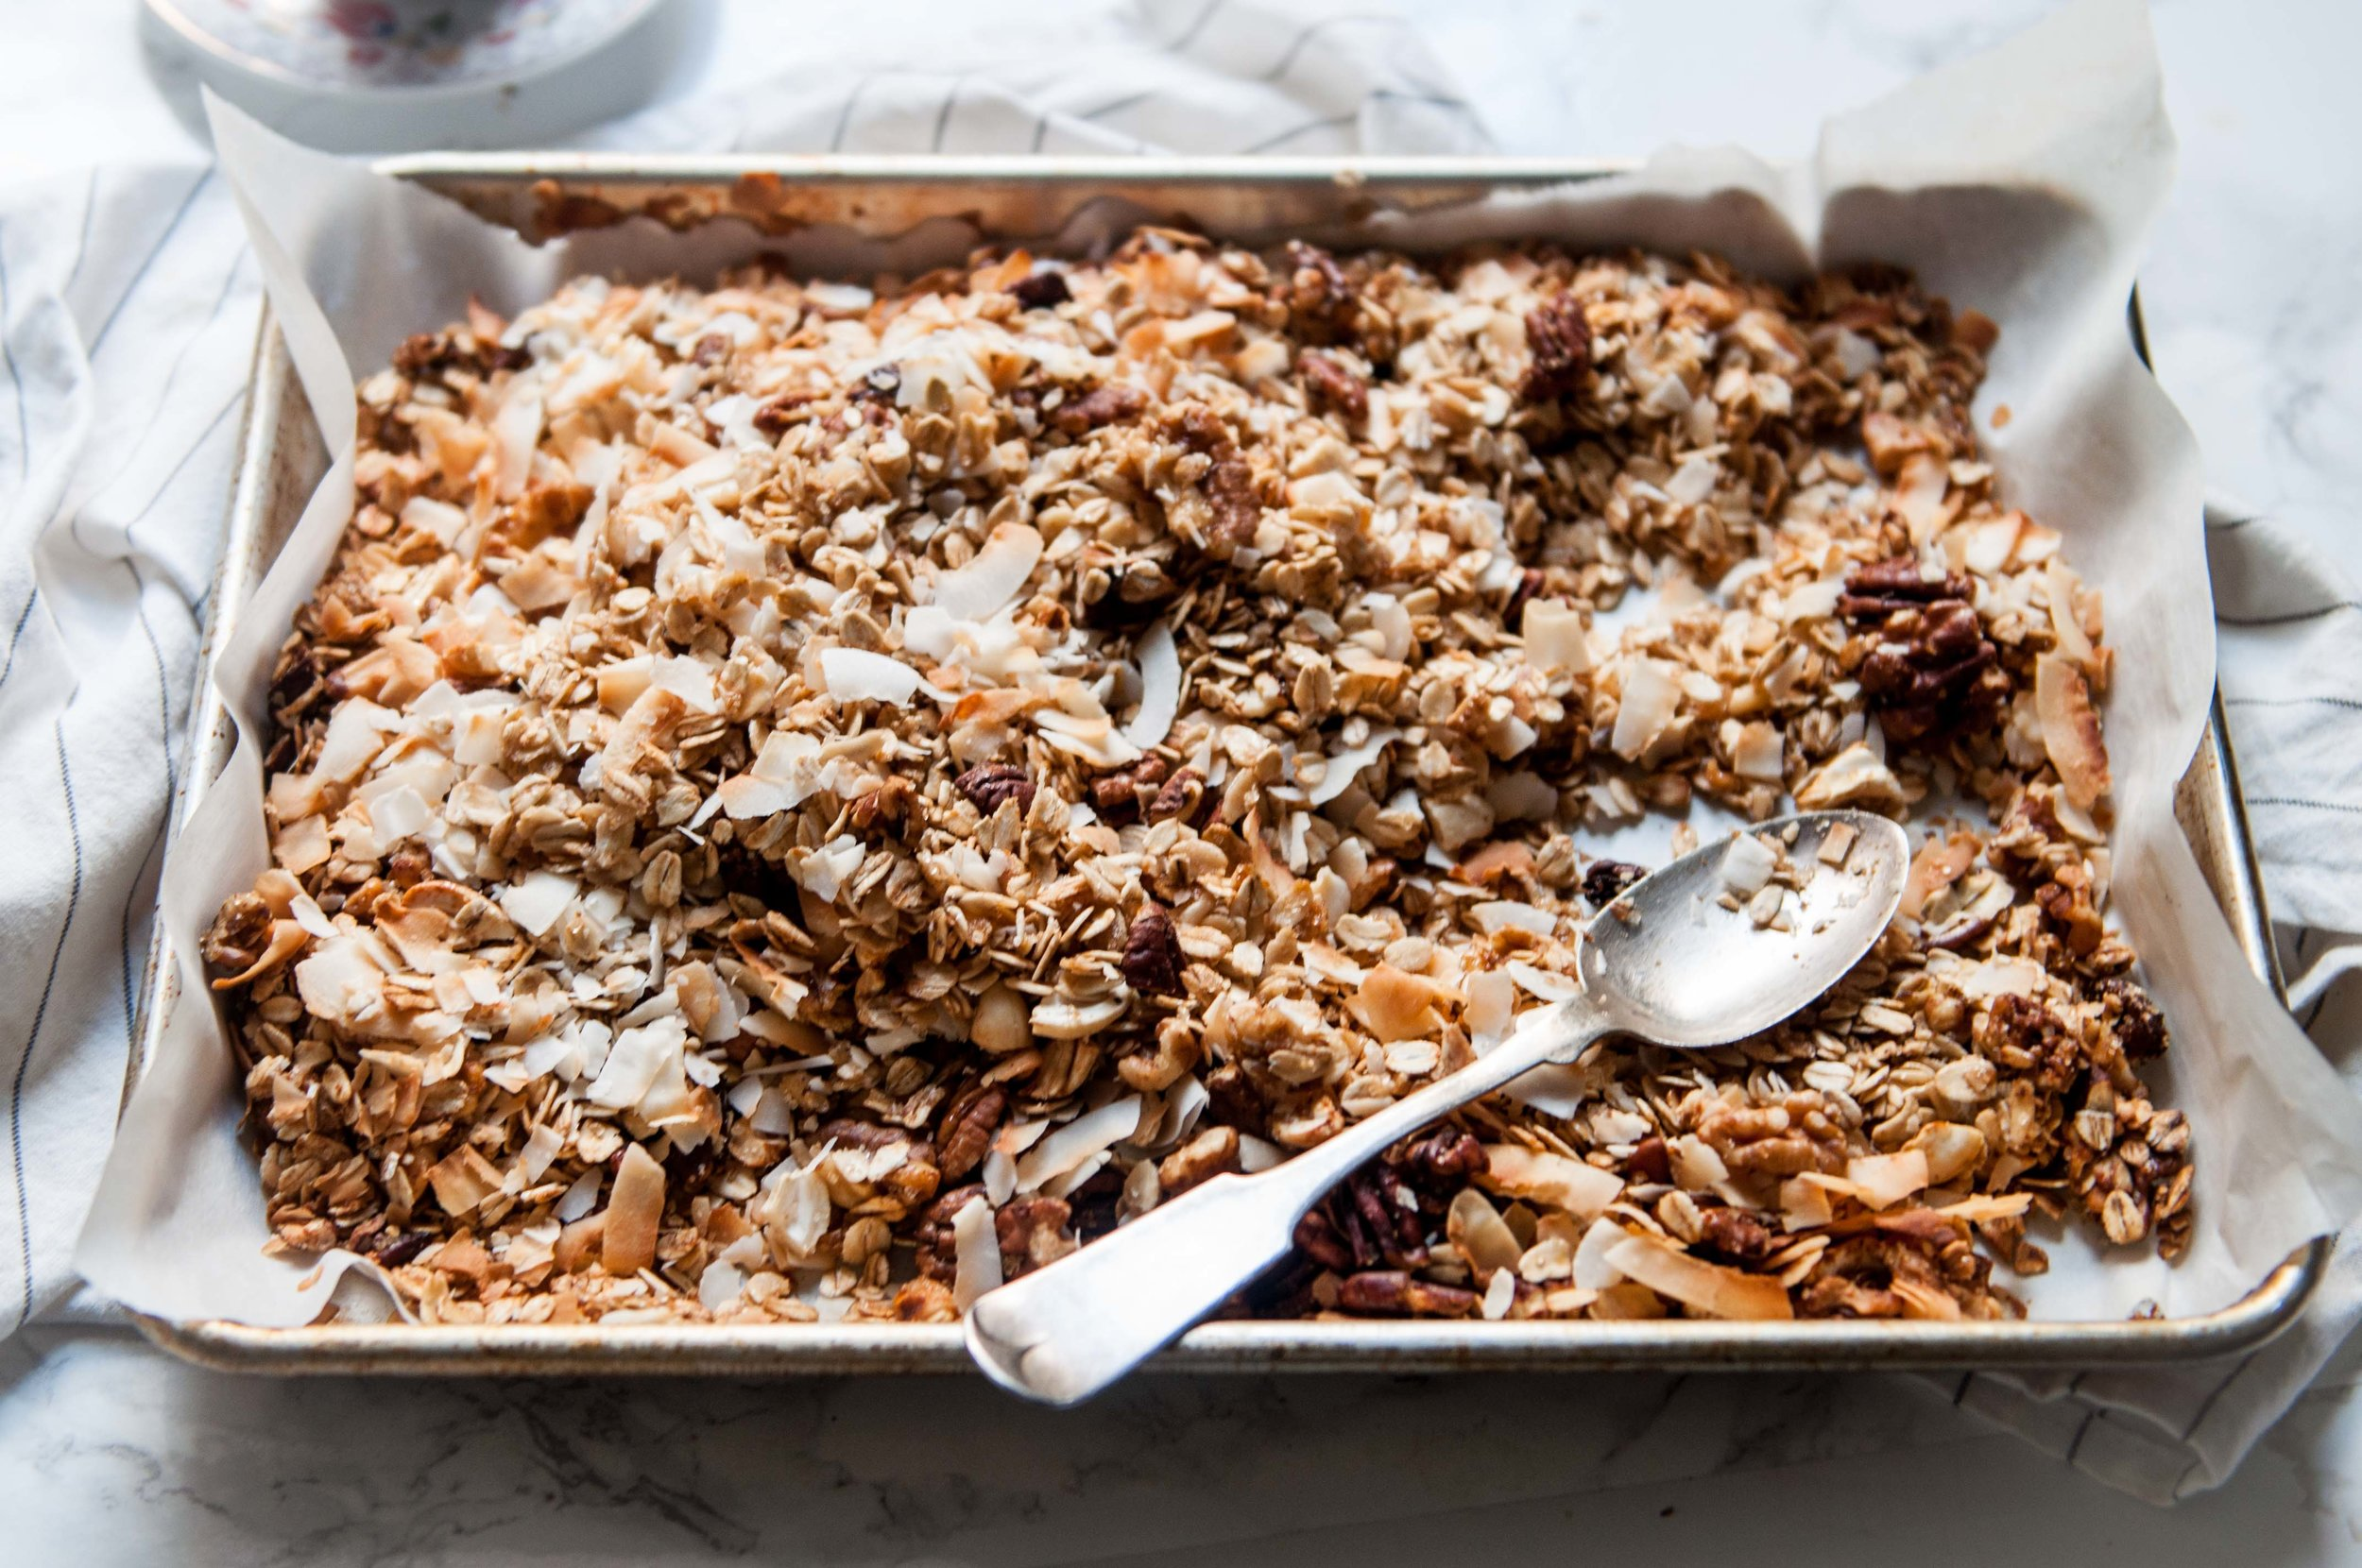 Baked granola with roasted oats, raw honey, cashews, pecans, walnuts and coconut flakes.